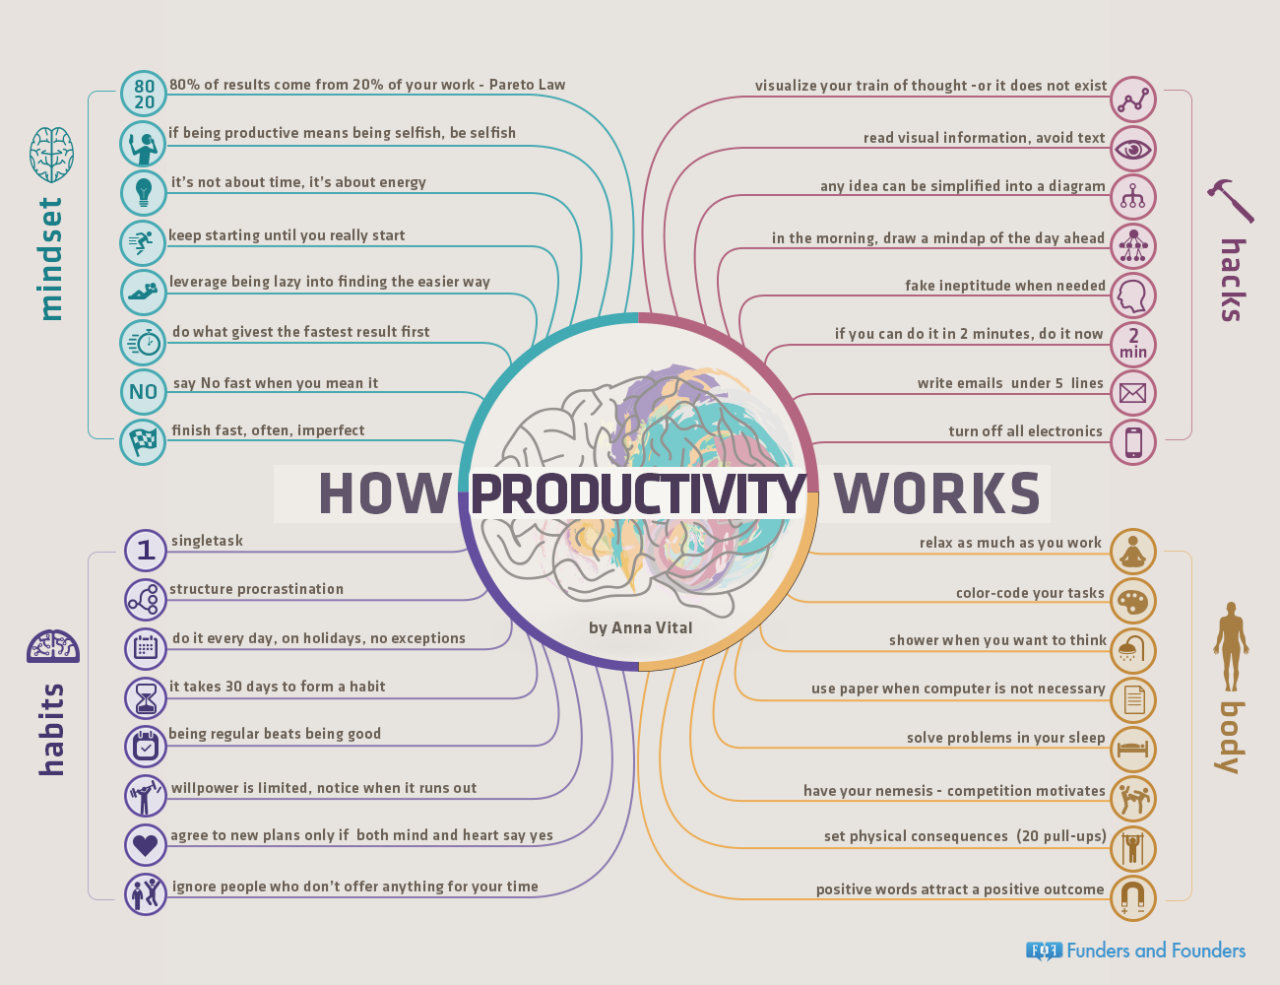 How productive are you